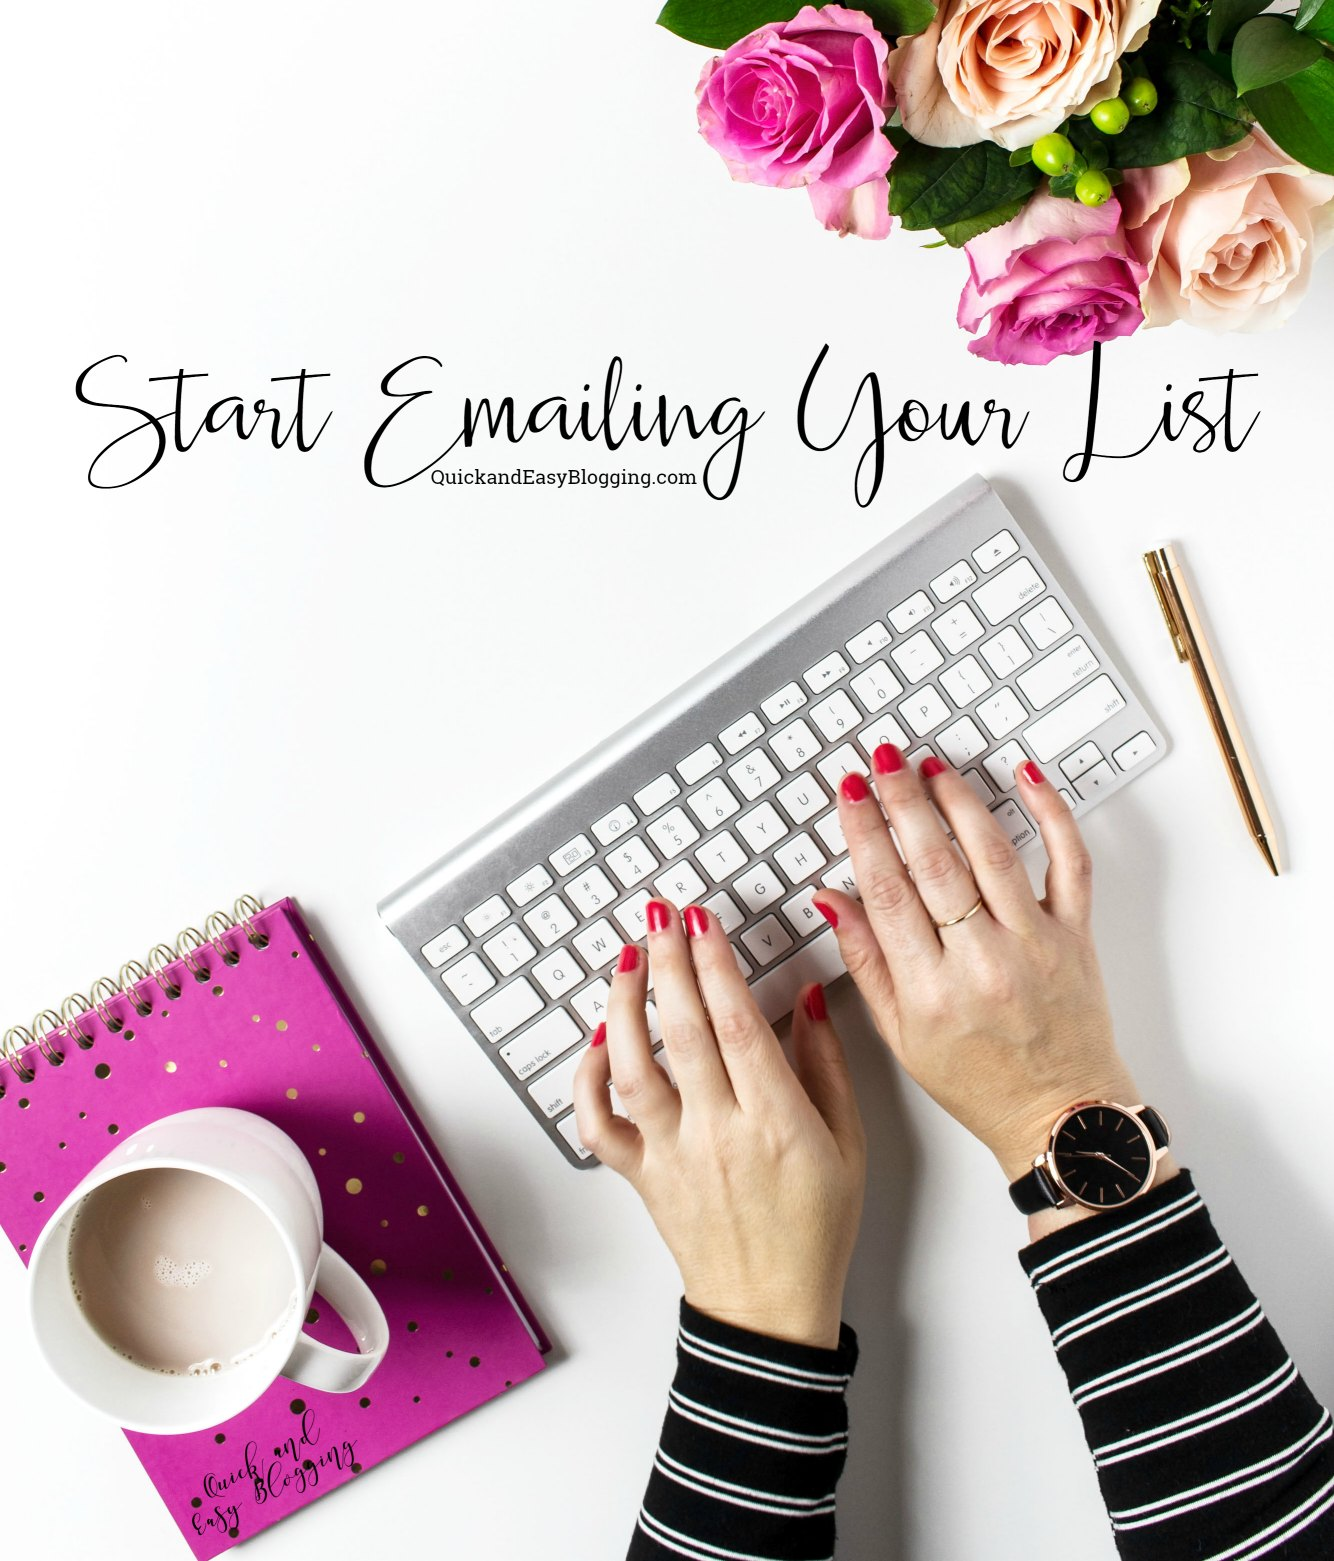 Start Emailing Your List About New Blog Posts